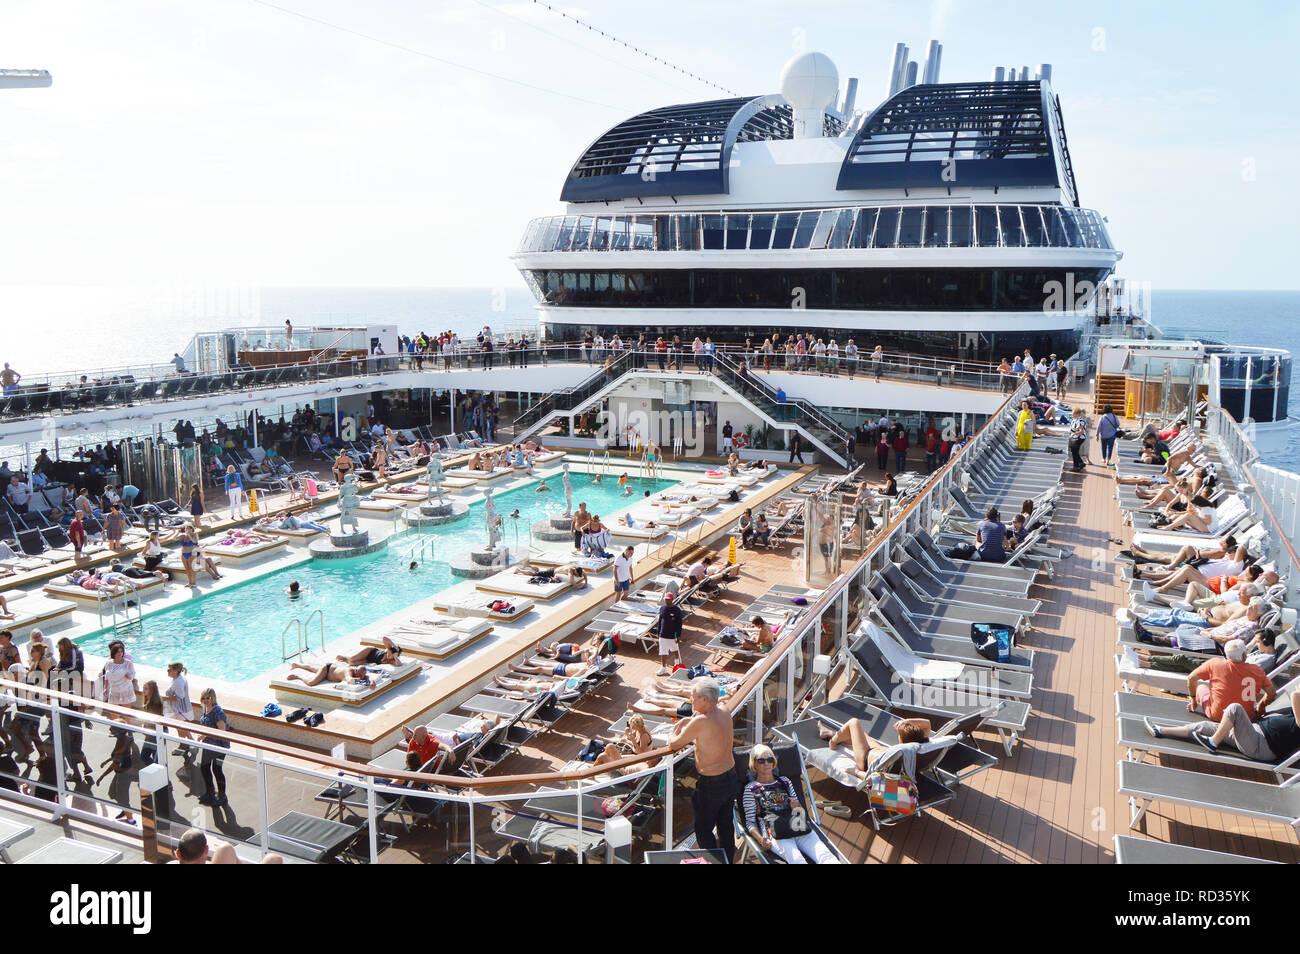 Panorama of the open deck with a luxurious pool and numerous tourists ship MSC Meraviglia, October 10, 2018. - Stock Image